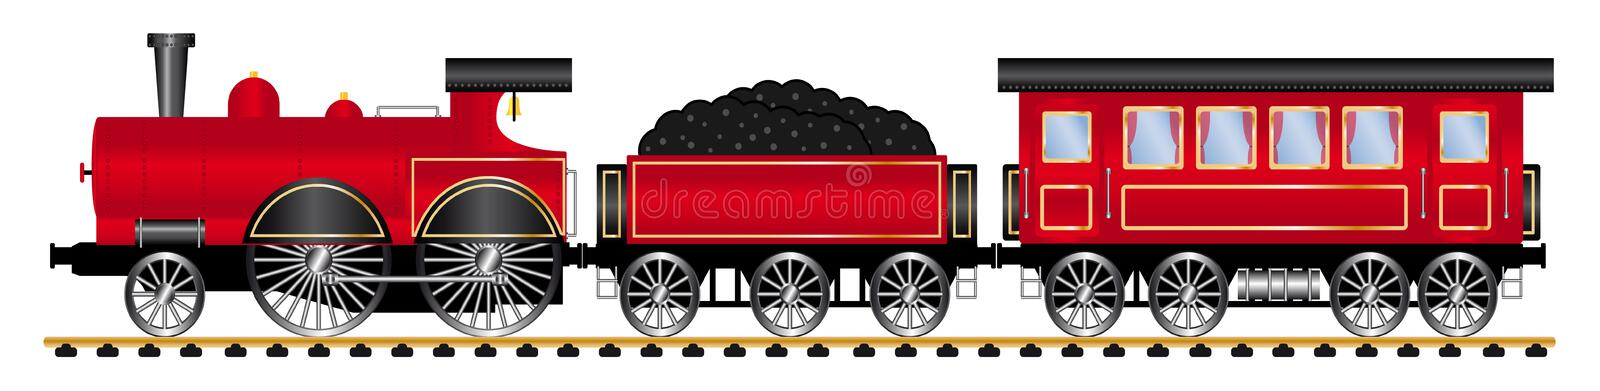 Red steam locomotive with personal wagons stock illustration